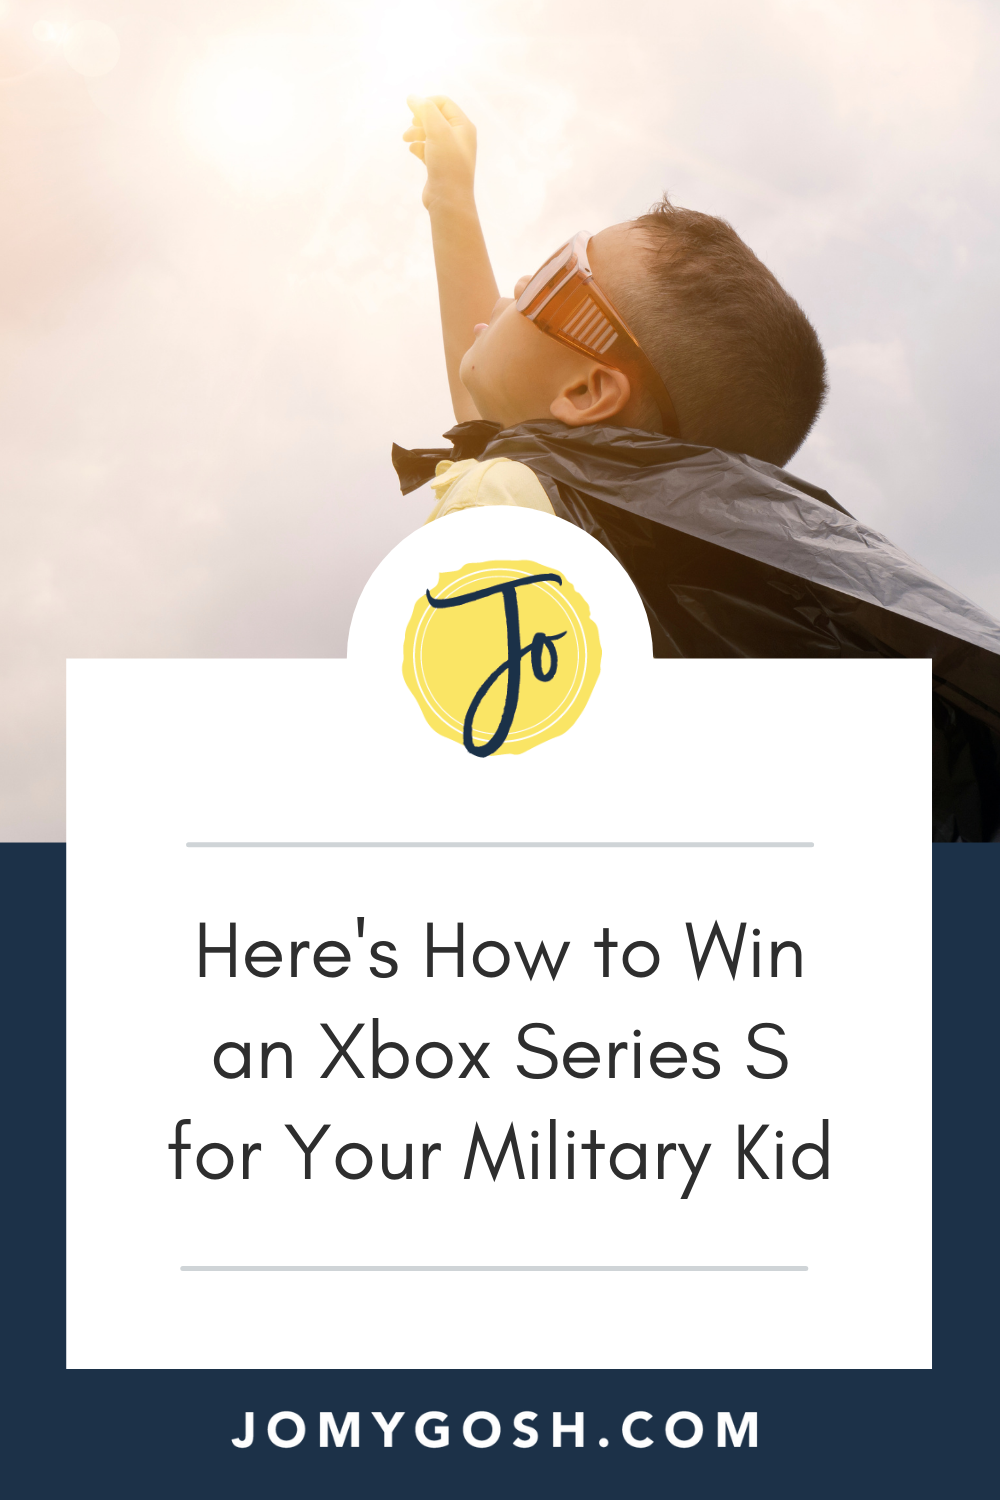 Here's how to win not one but TWO Xbox Series S and Xbox Game Pass Ultimate passes for your military child through Blue Star Families' get one, gift one contest in honor of Month of the Military Child #sponsored #militarychild #militarykid #milkid #gaming #gifting #militaryfamily #milfam #militaryspouse #milspouse #militarymom #milmom #milspo #milspos #milso #milsos #free #freebies #deals